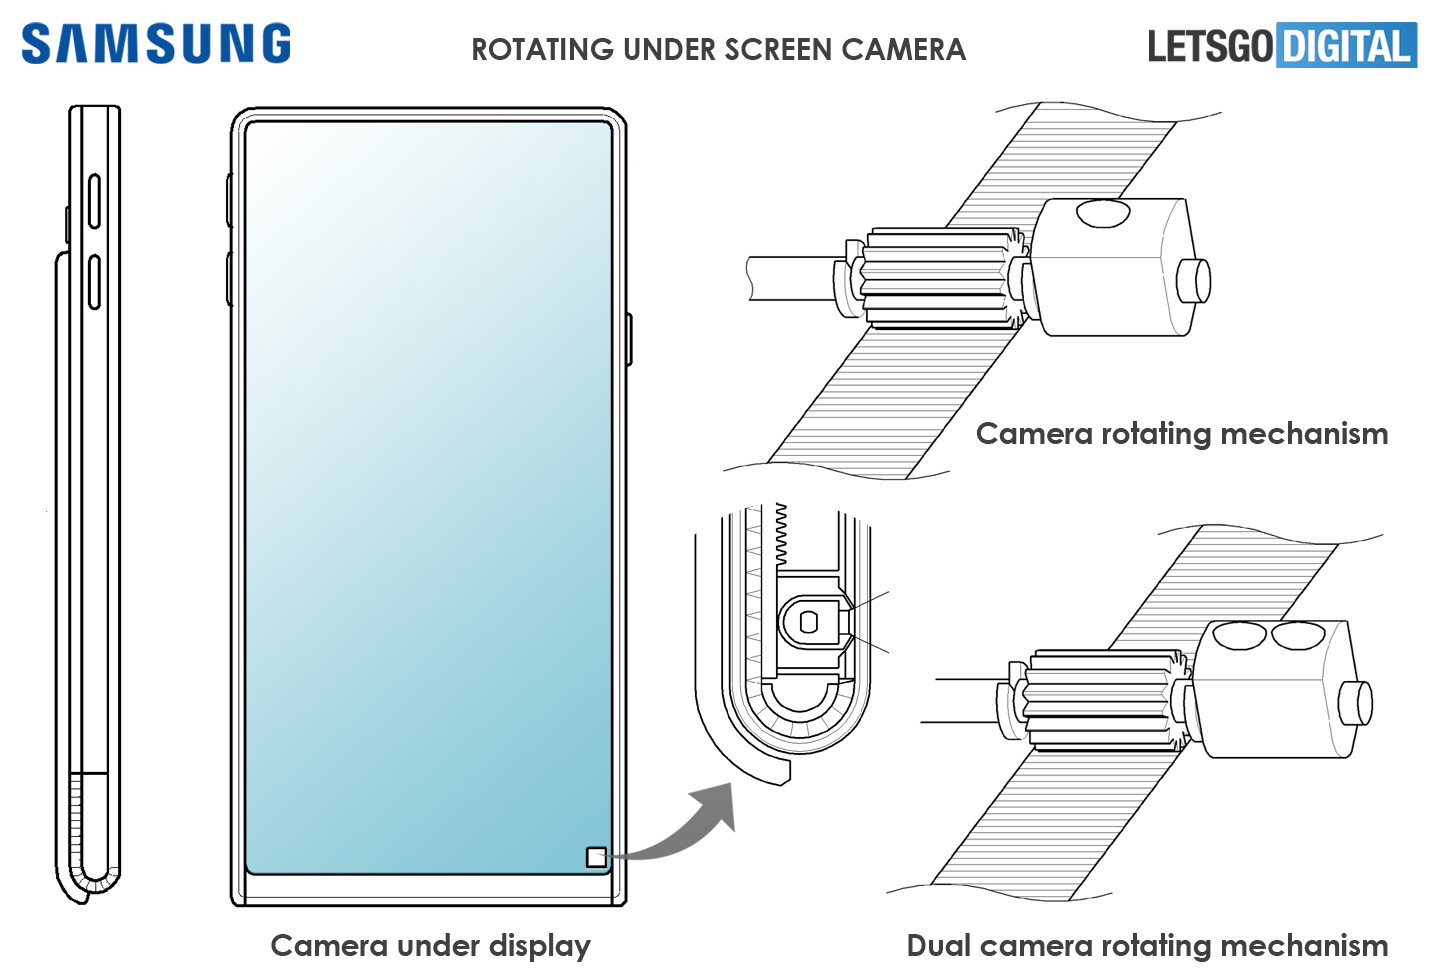 Samsung rotating under screen camera